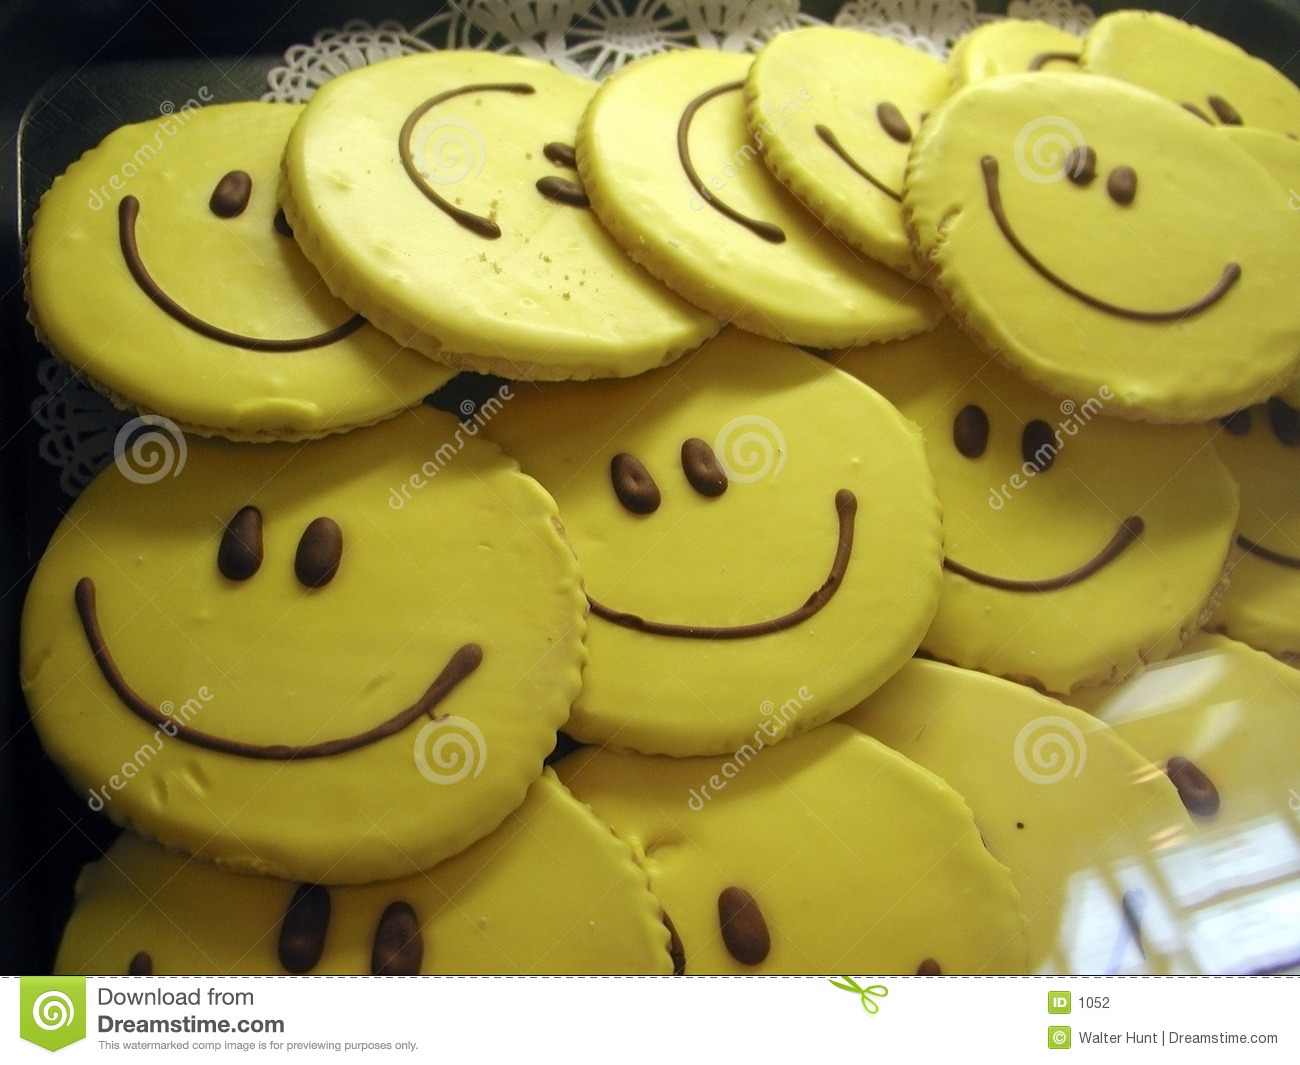 Biscotti di smiley